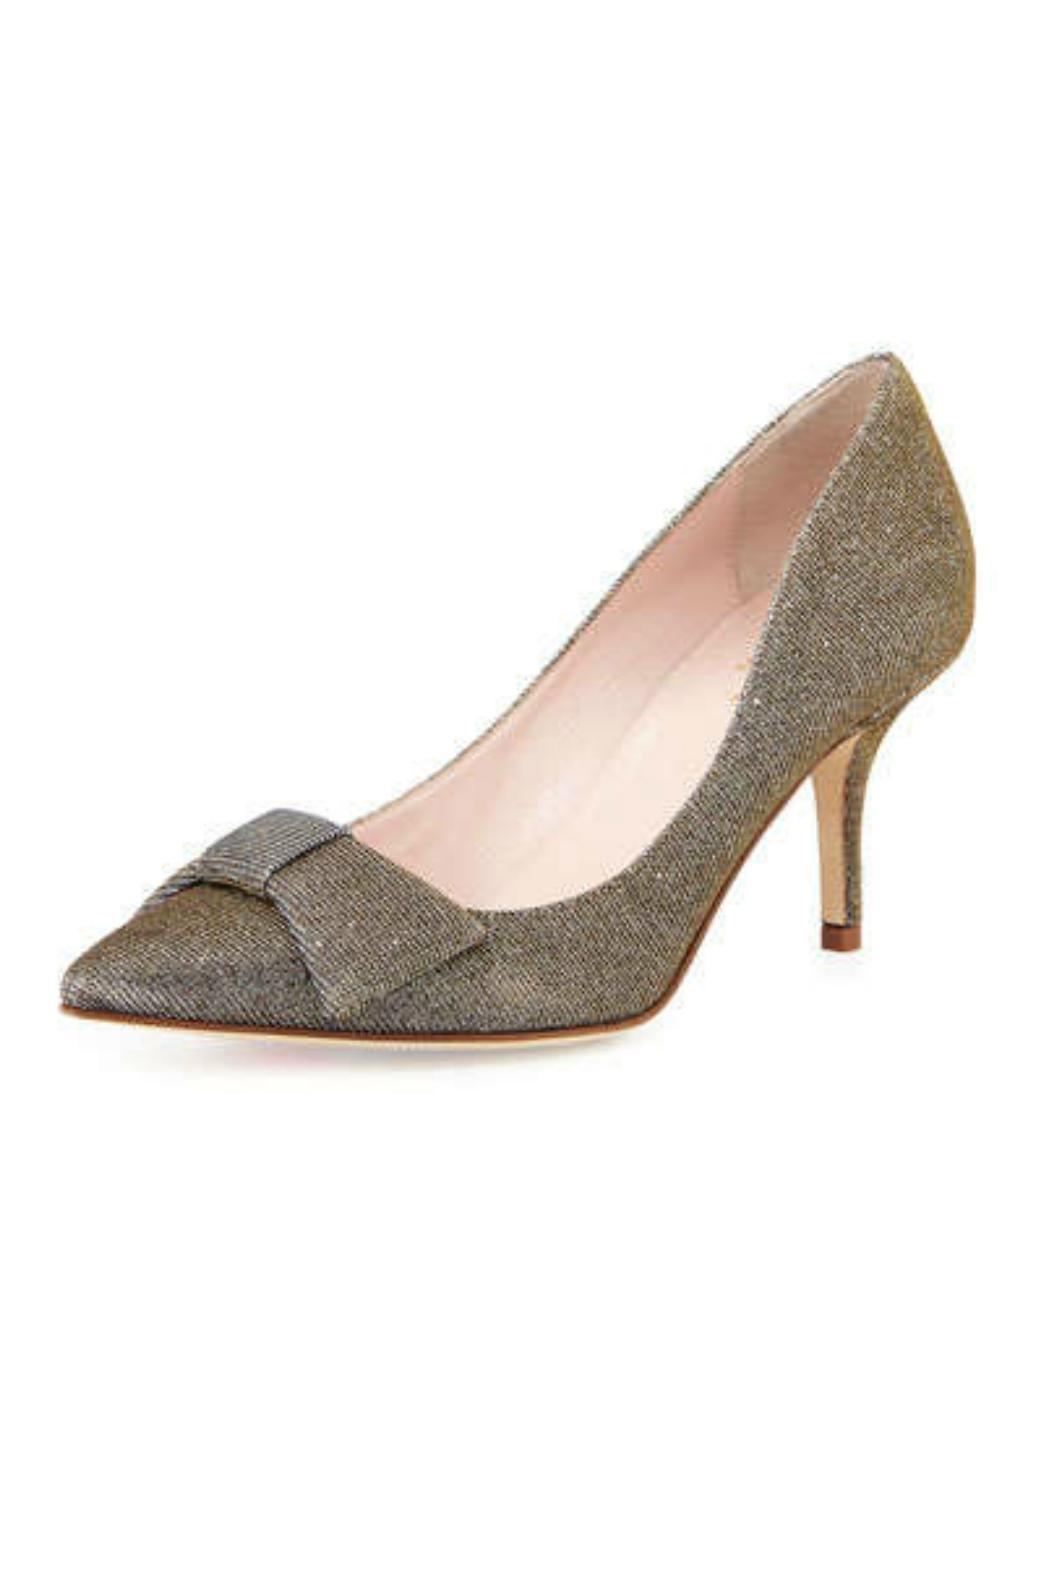 0963668224 Kate Spade New York Juliette Pump from New Hampshire by Stiletto ...